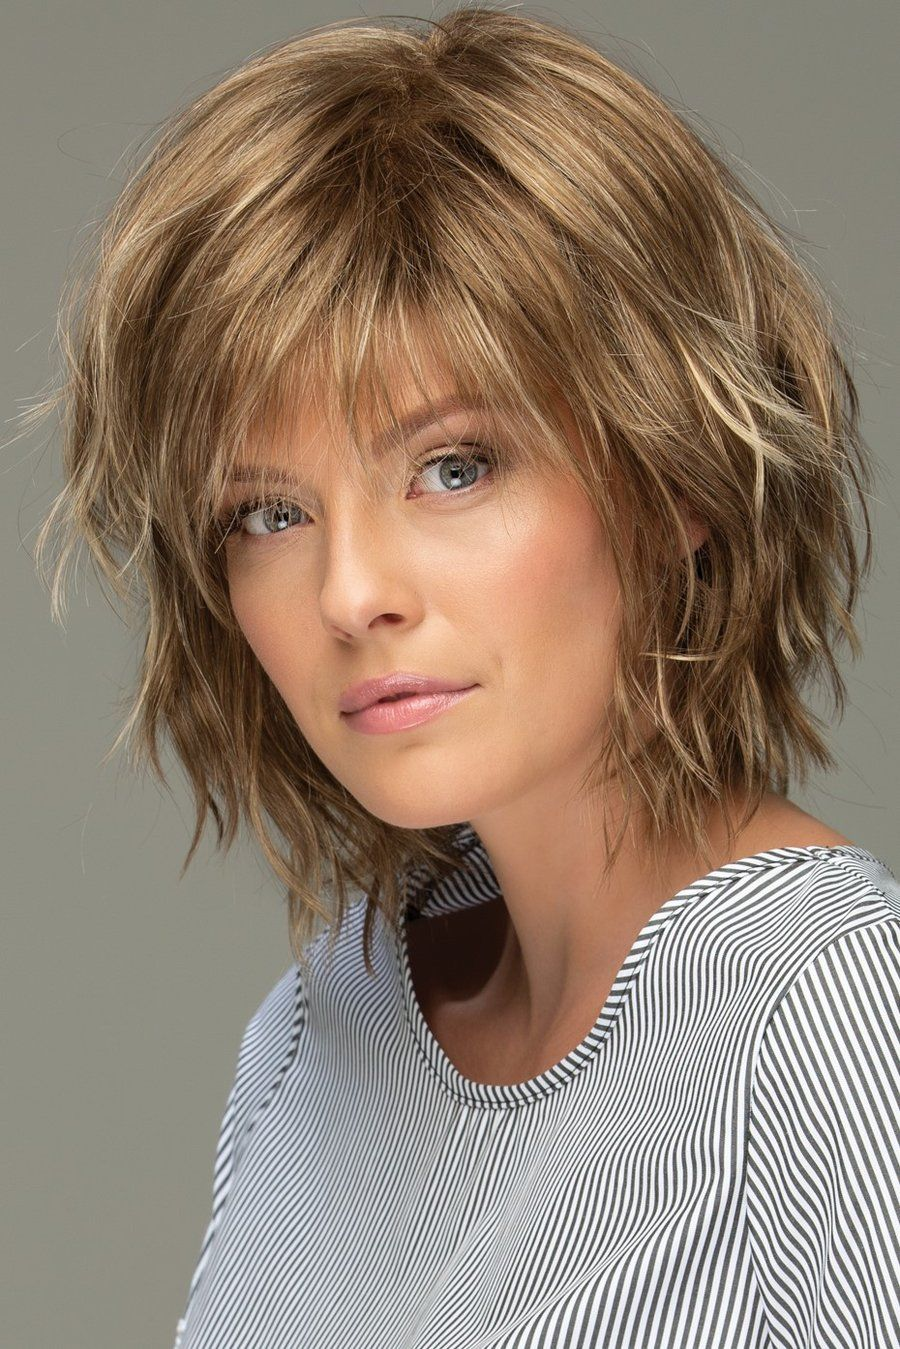 Estetica Wigs Jones In 2020 Choppy Bob Hairstyles Short Hair